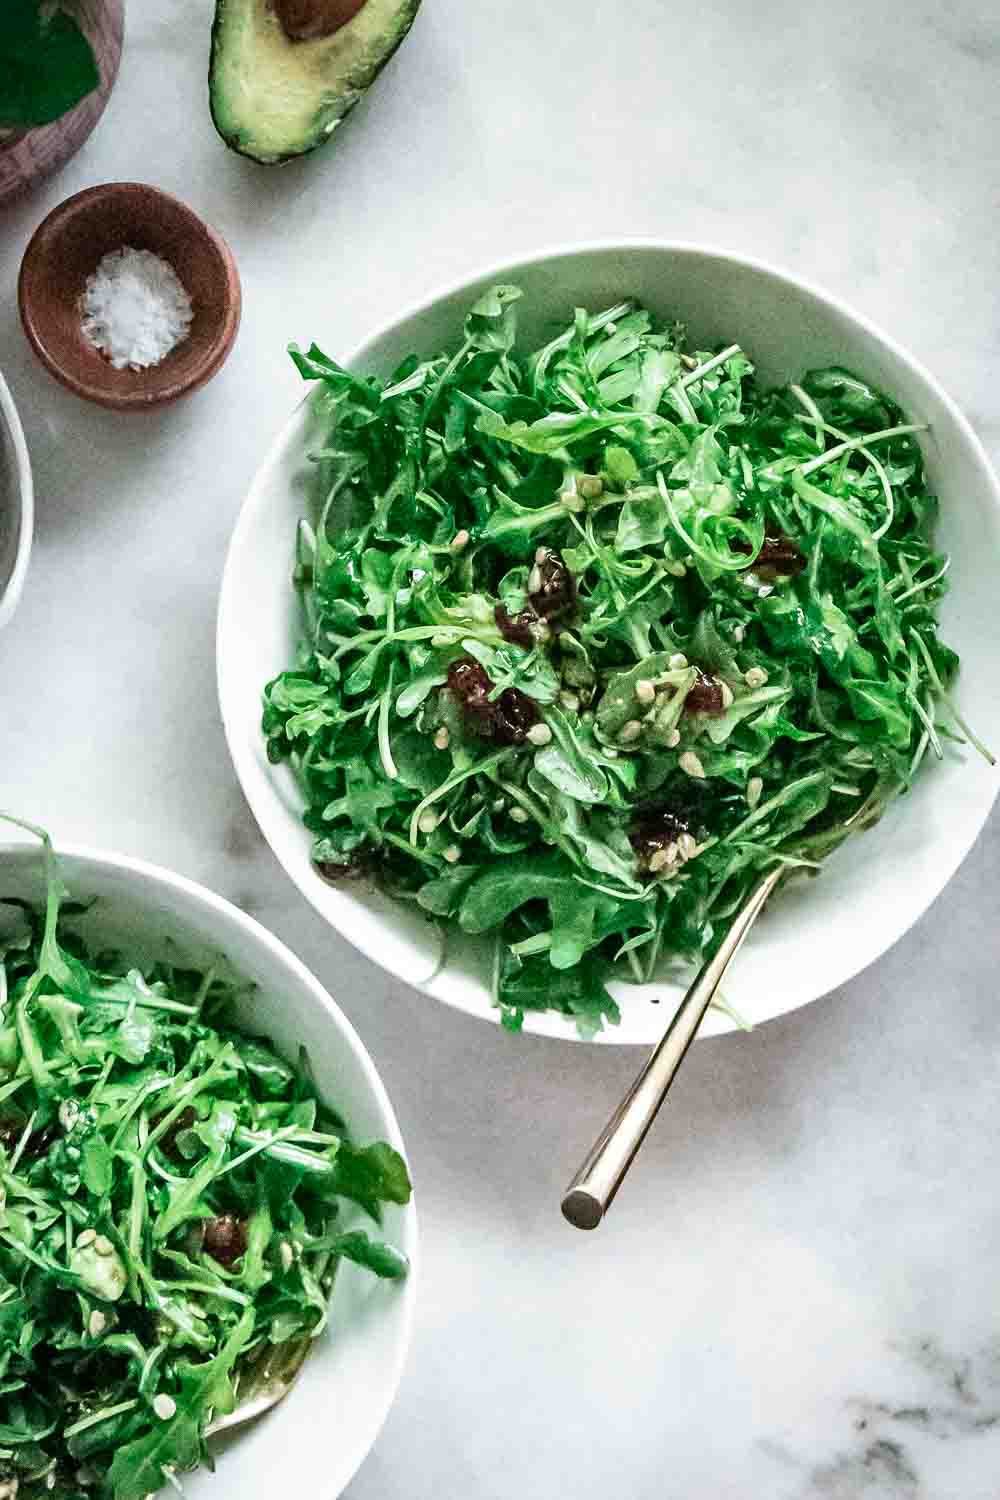 arugula salad with cranberries and sunflower seeds in a white bowl on a marble table